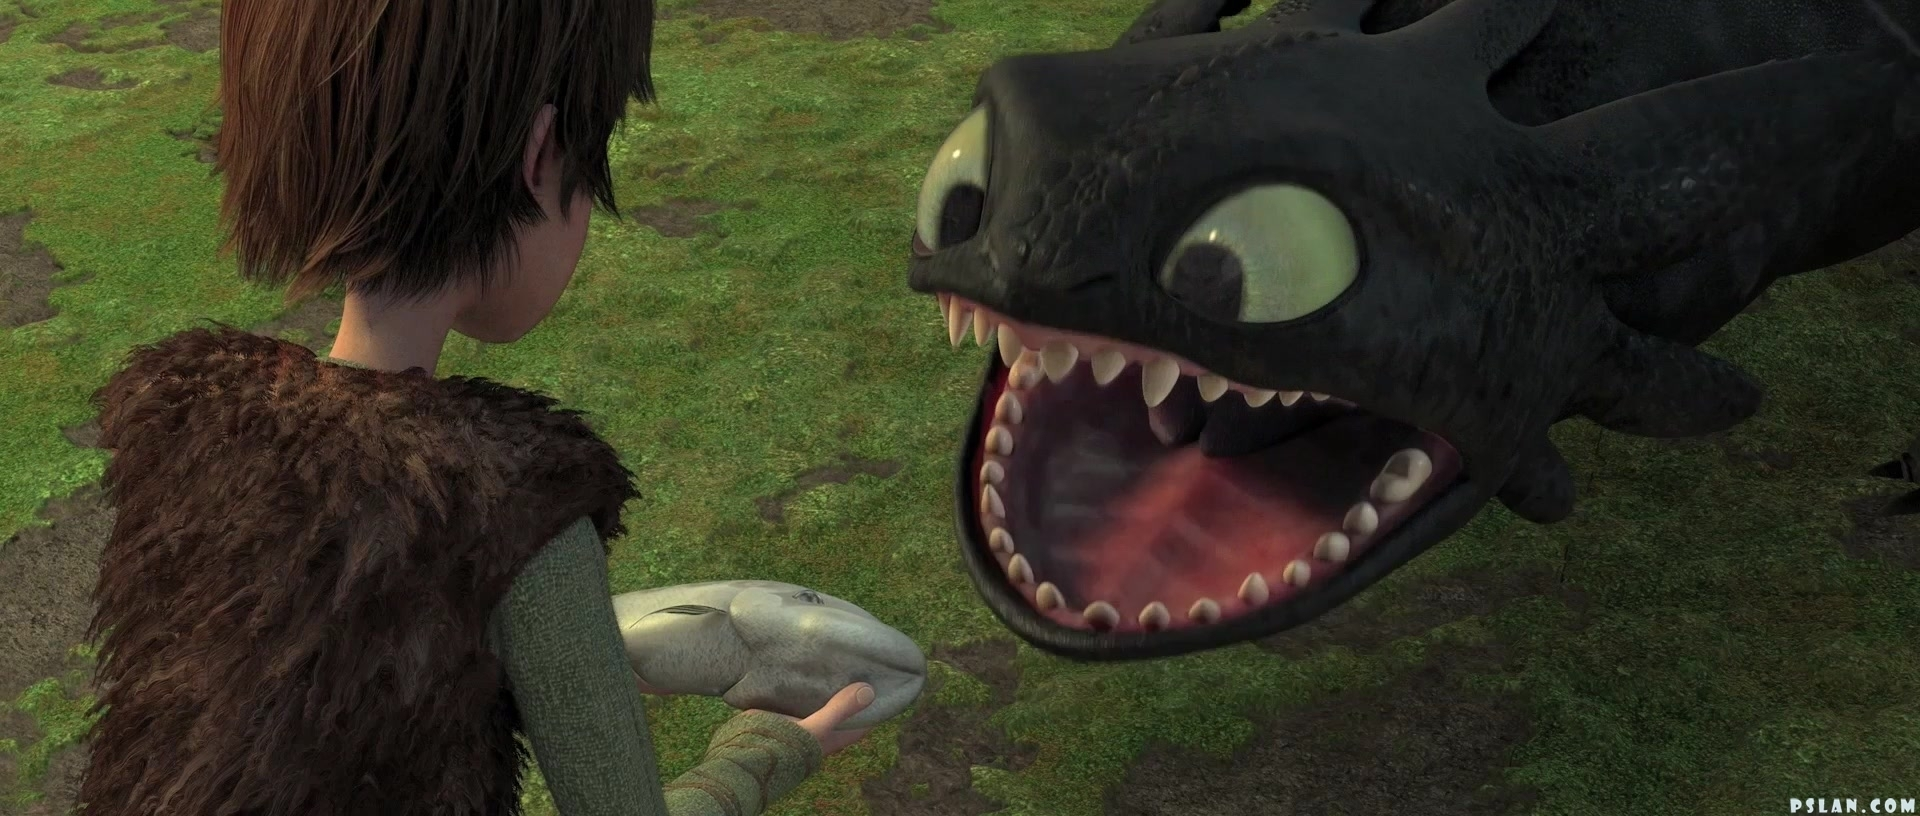 toothless3